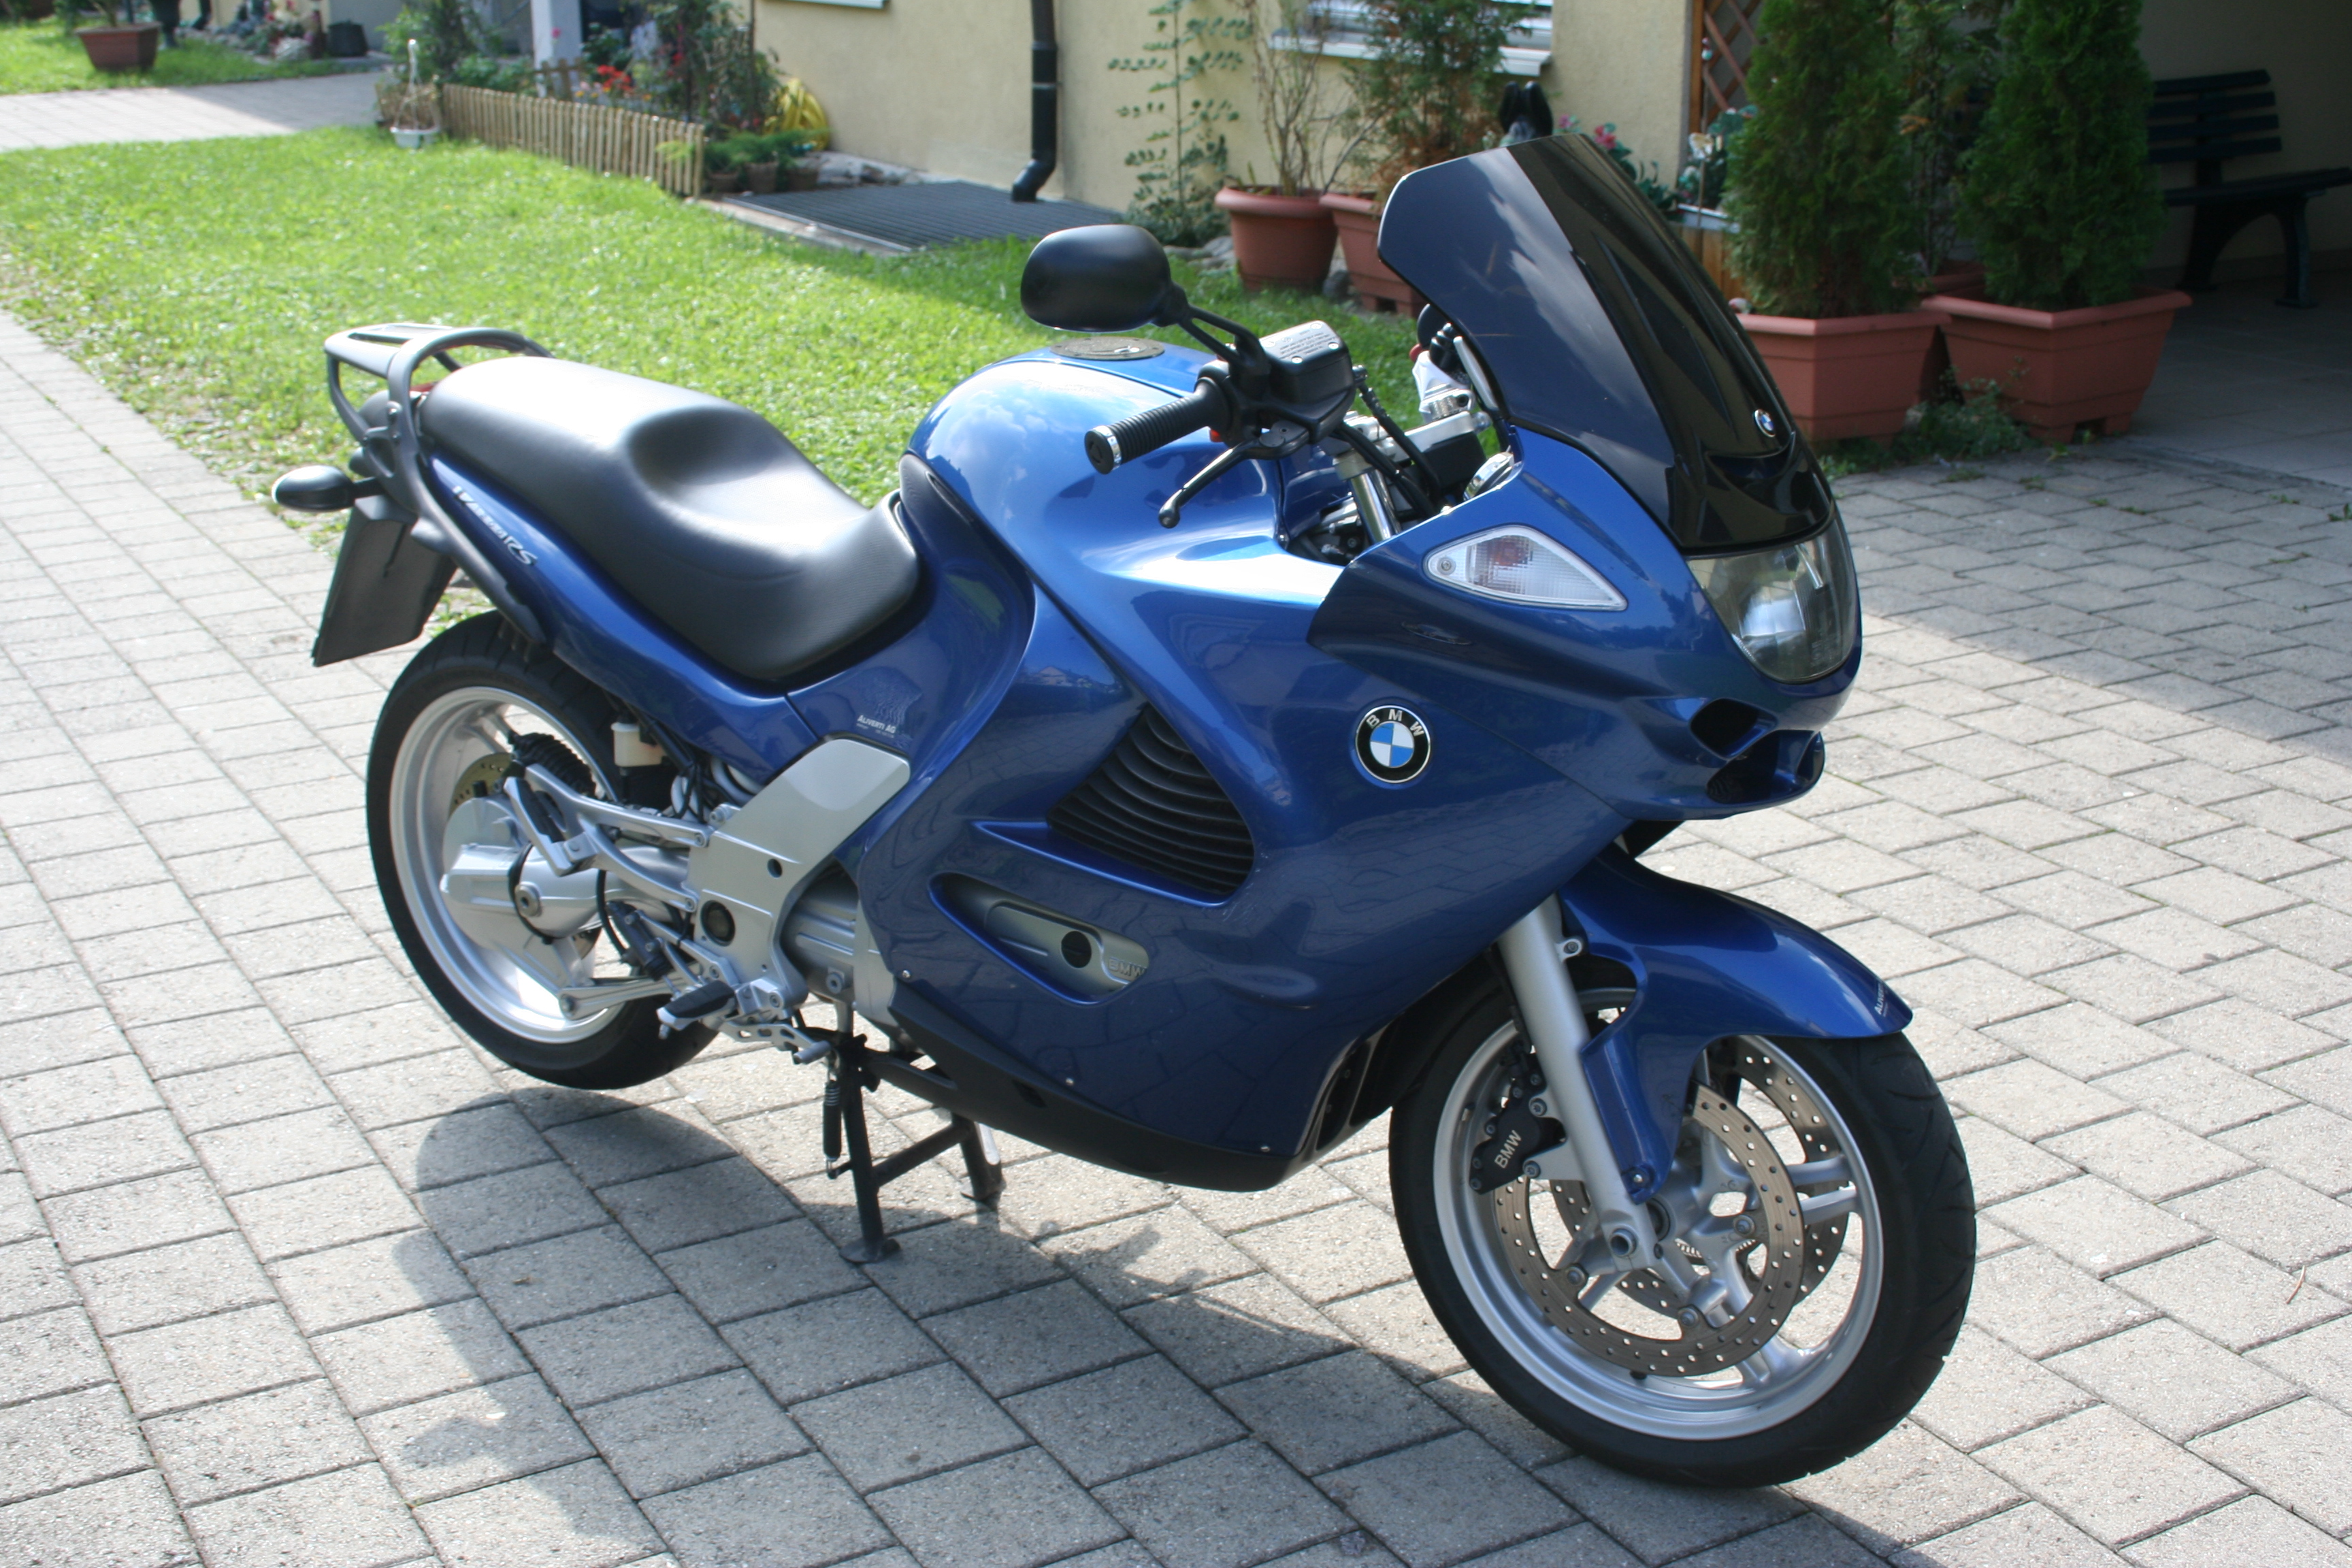 BMW K1200RS 2006 images #7415